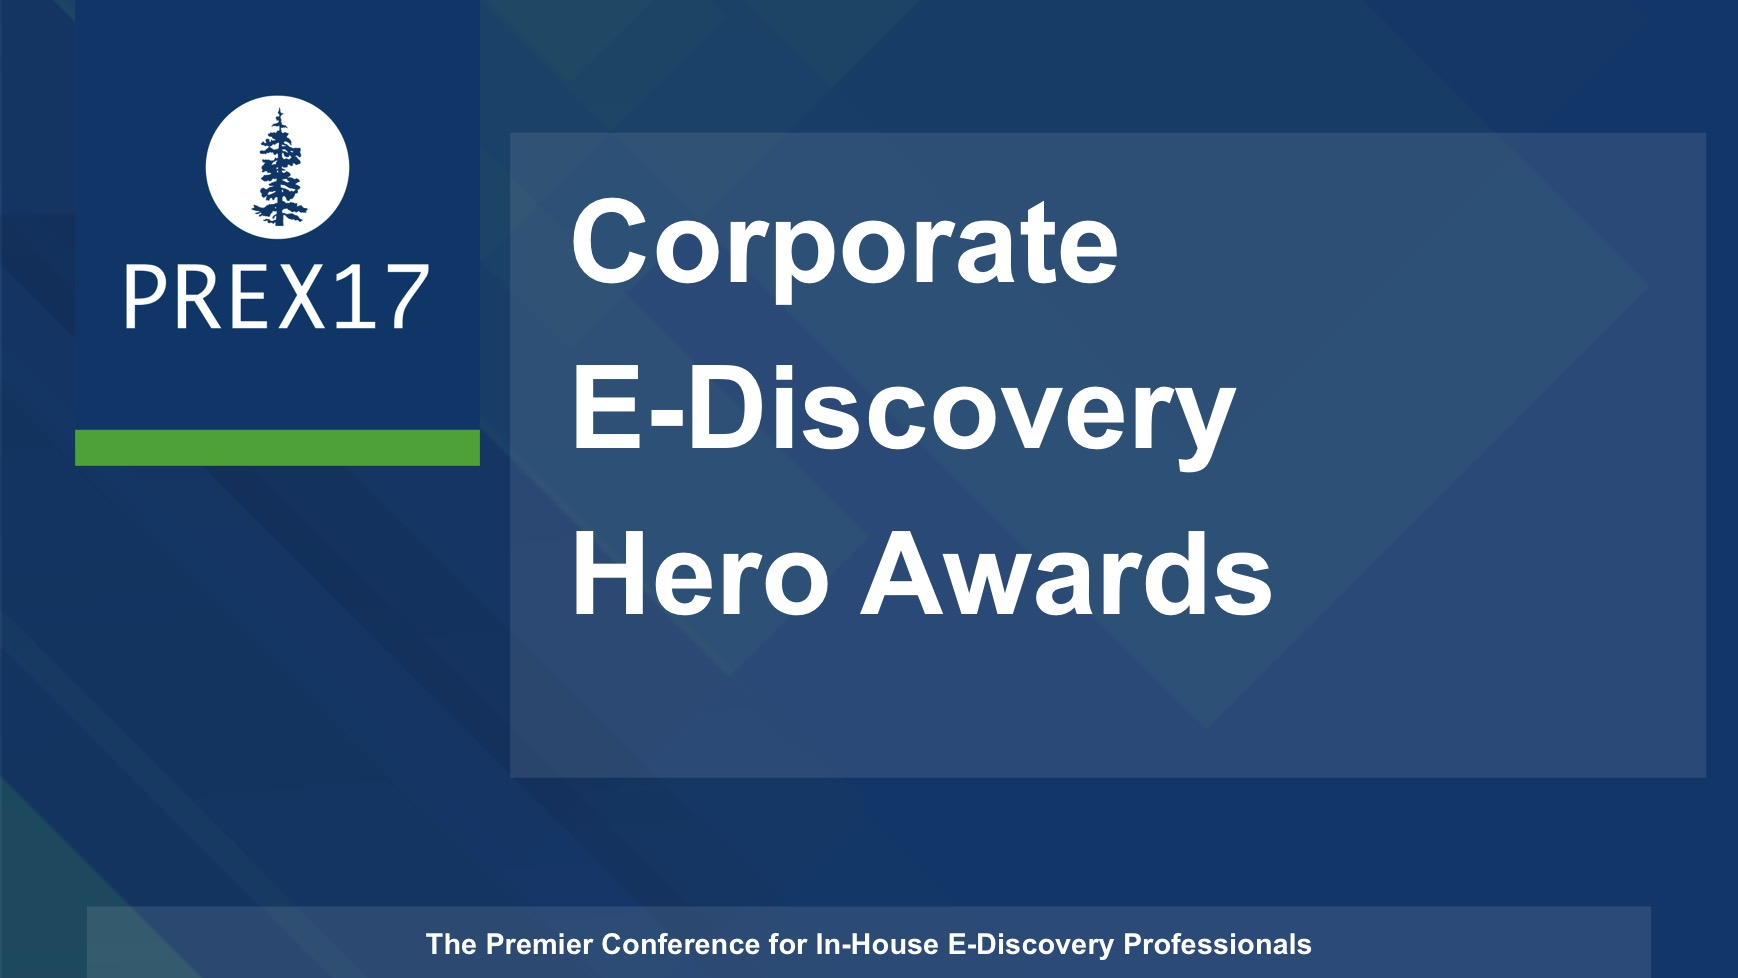 Corporate E-Discovery Heroes